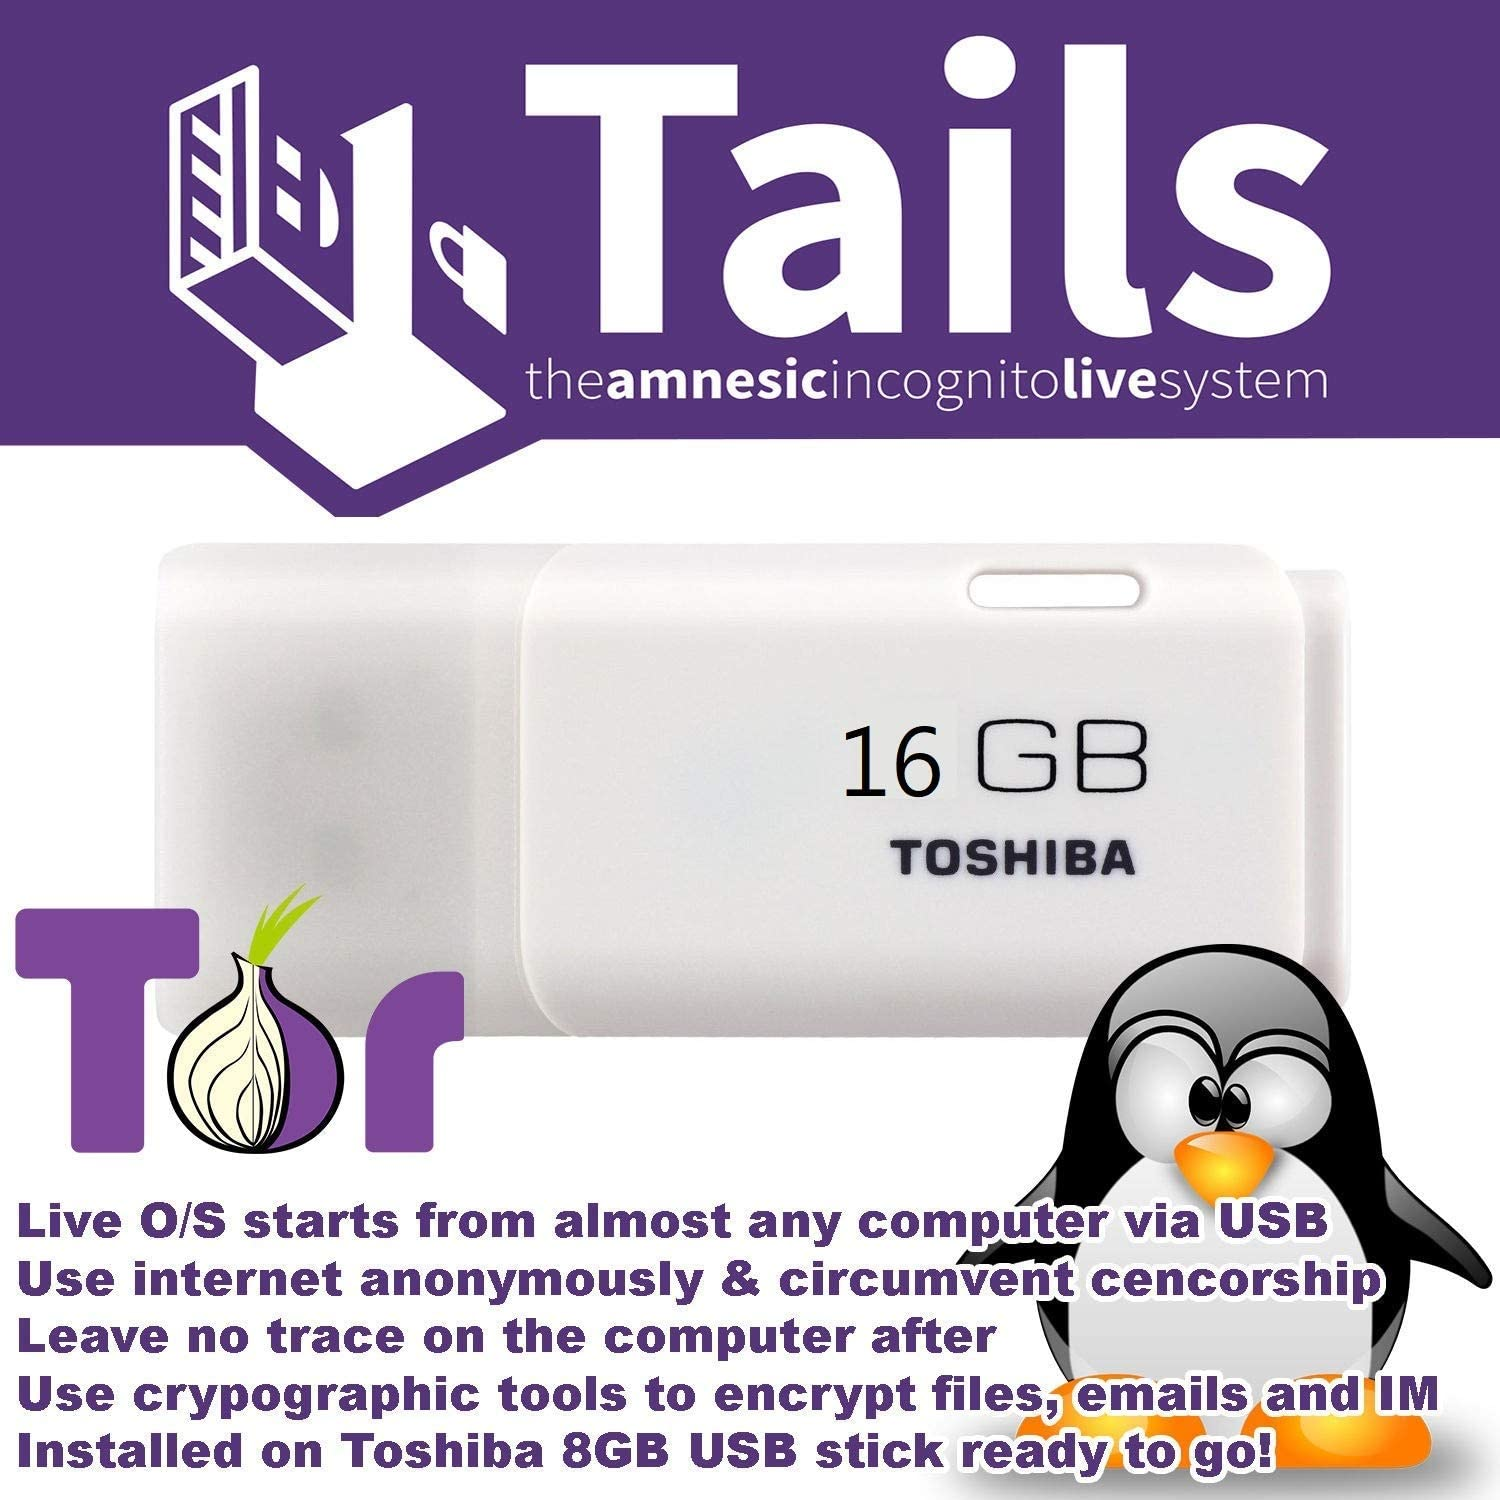 Linux Tails Secure OS Anonymous Browsing on Bootable USB